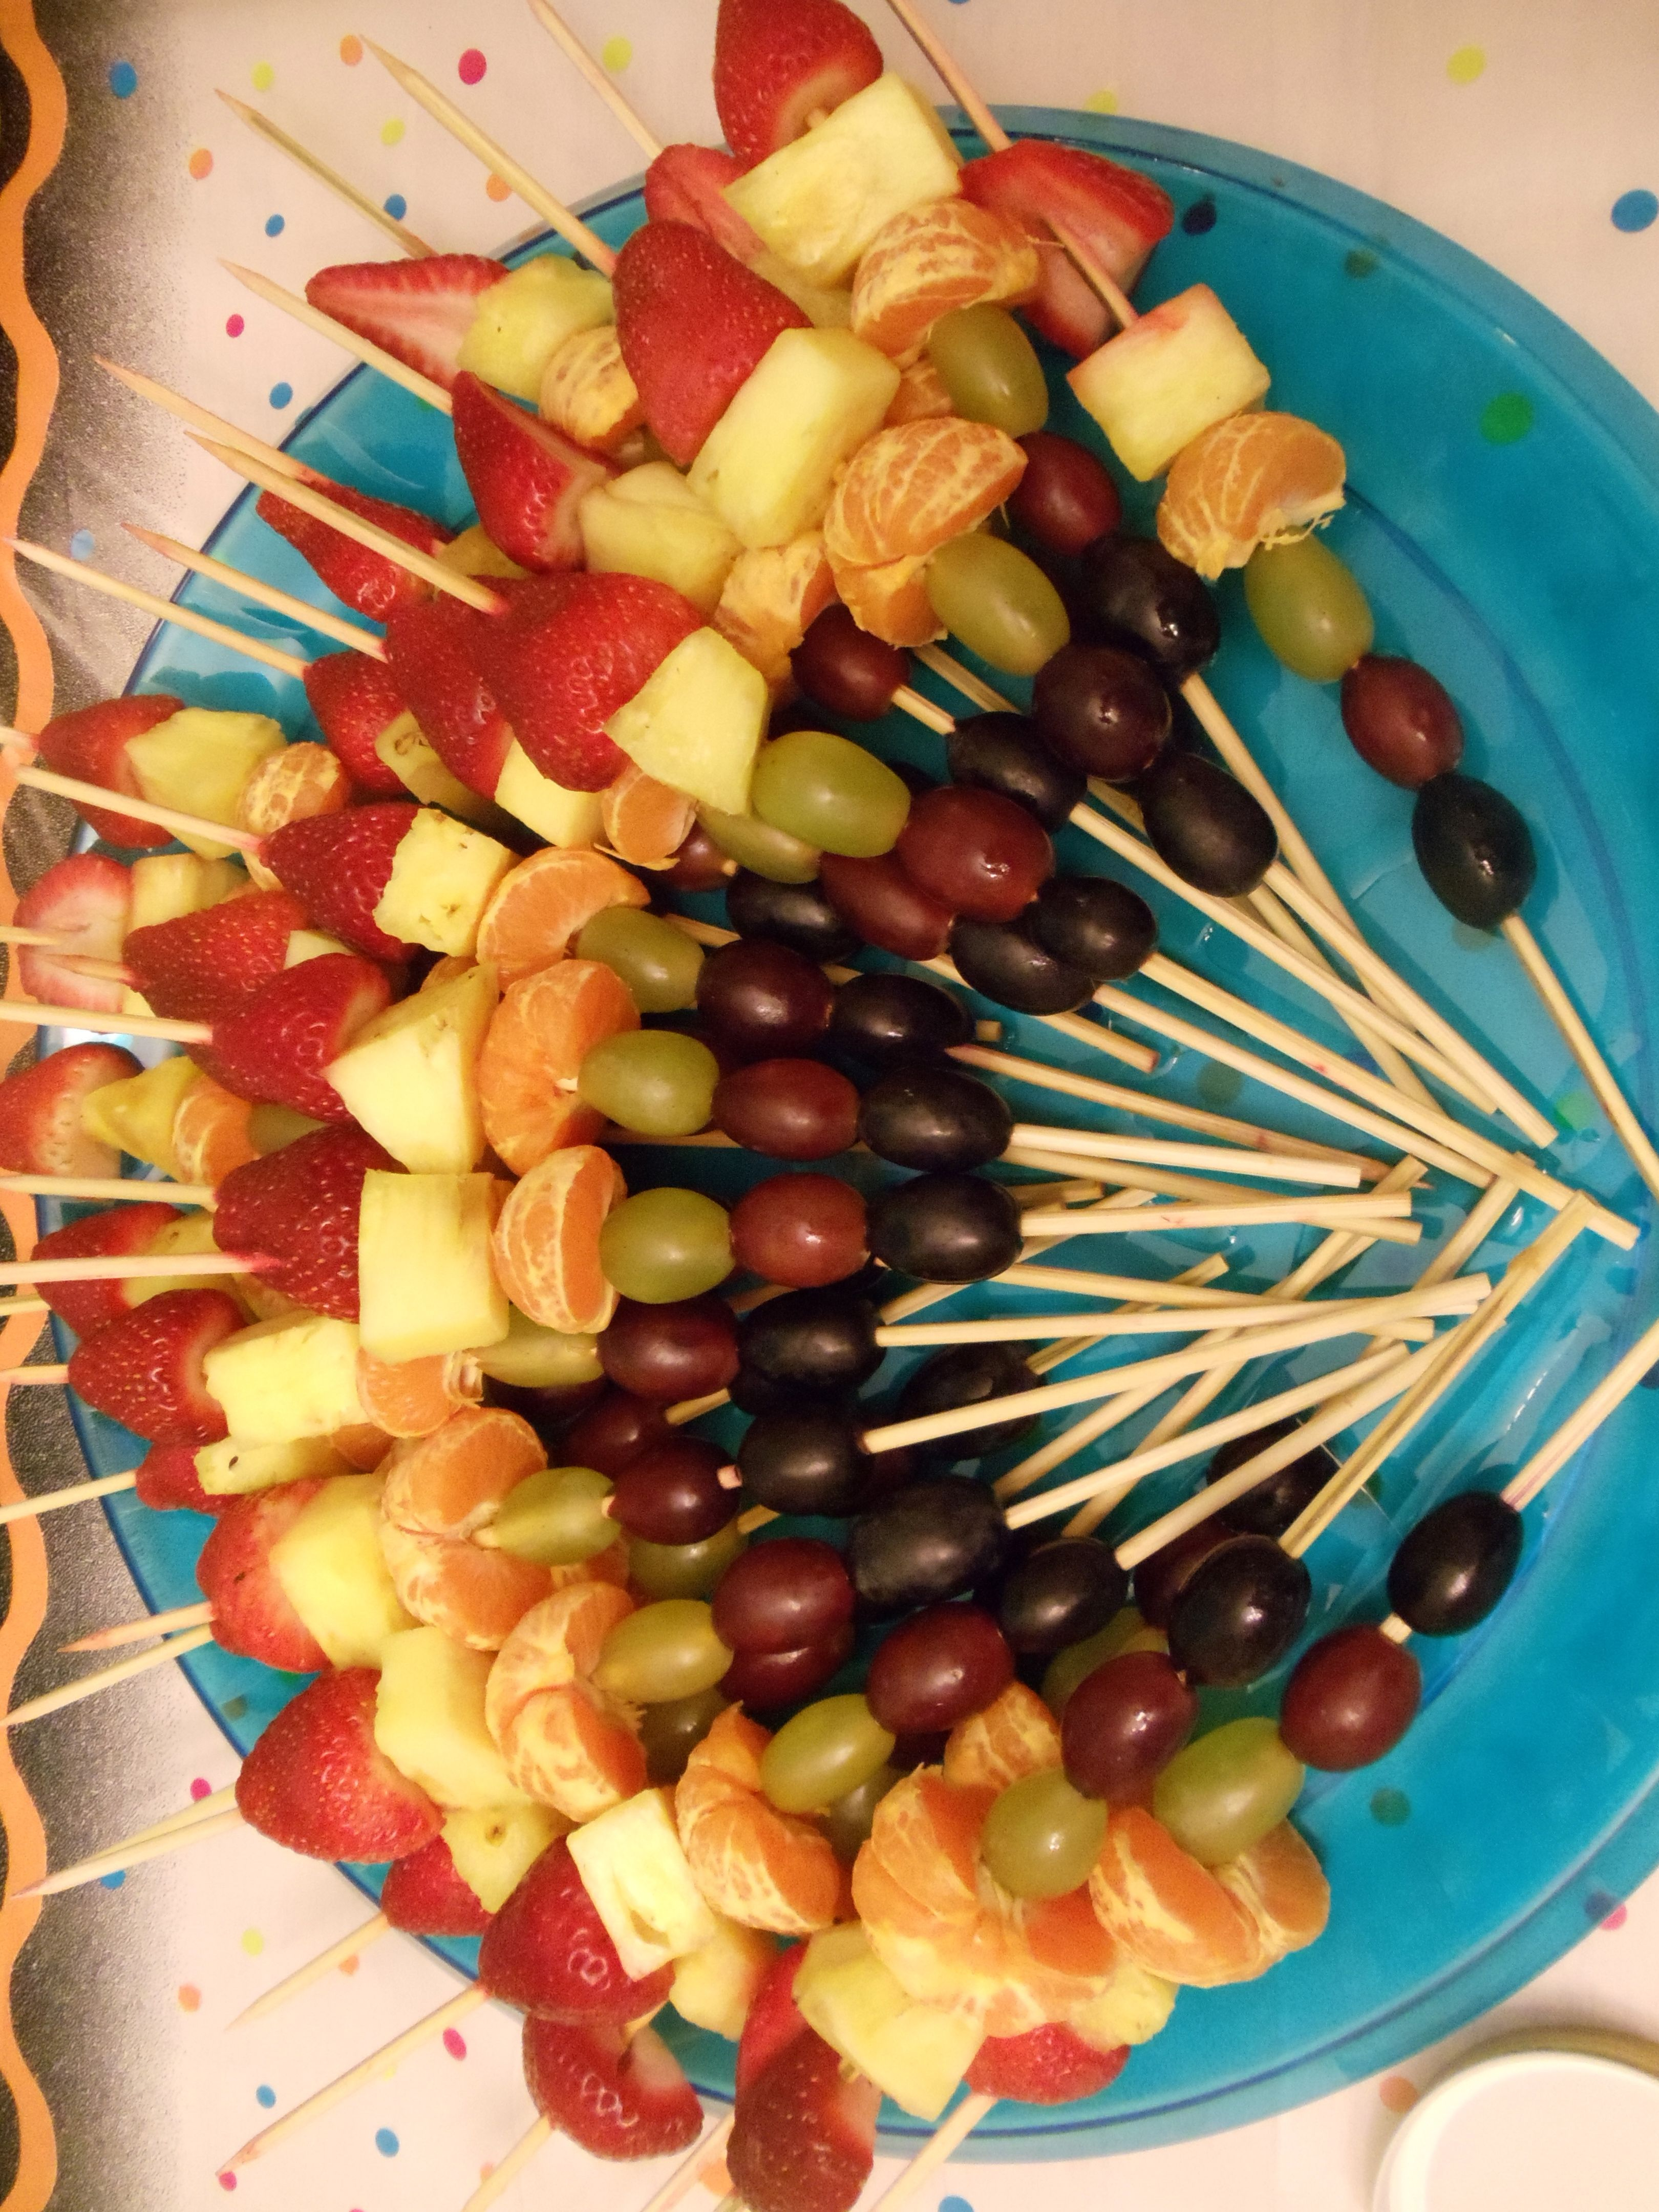 s party food. Appetizers clipart fruit skewer